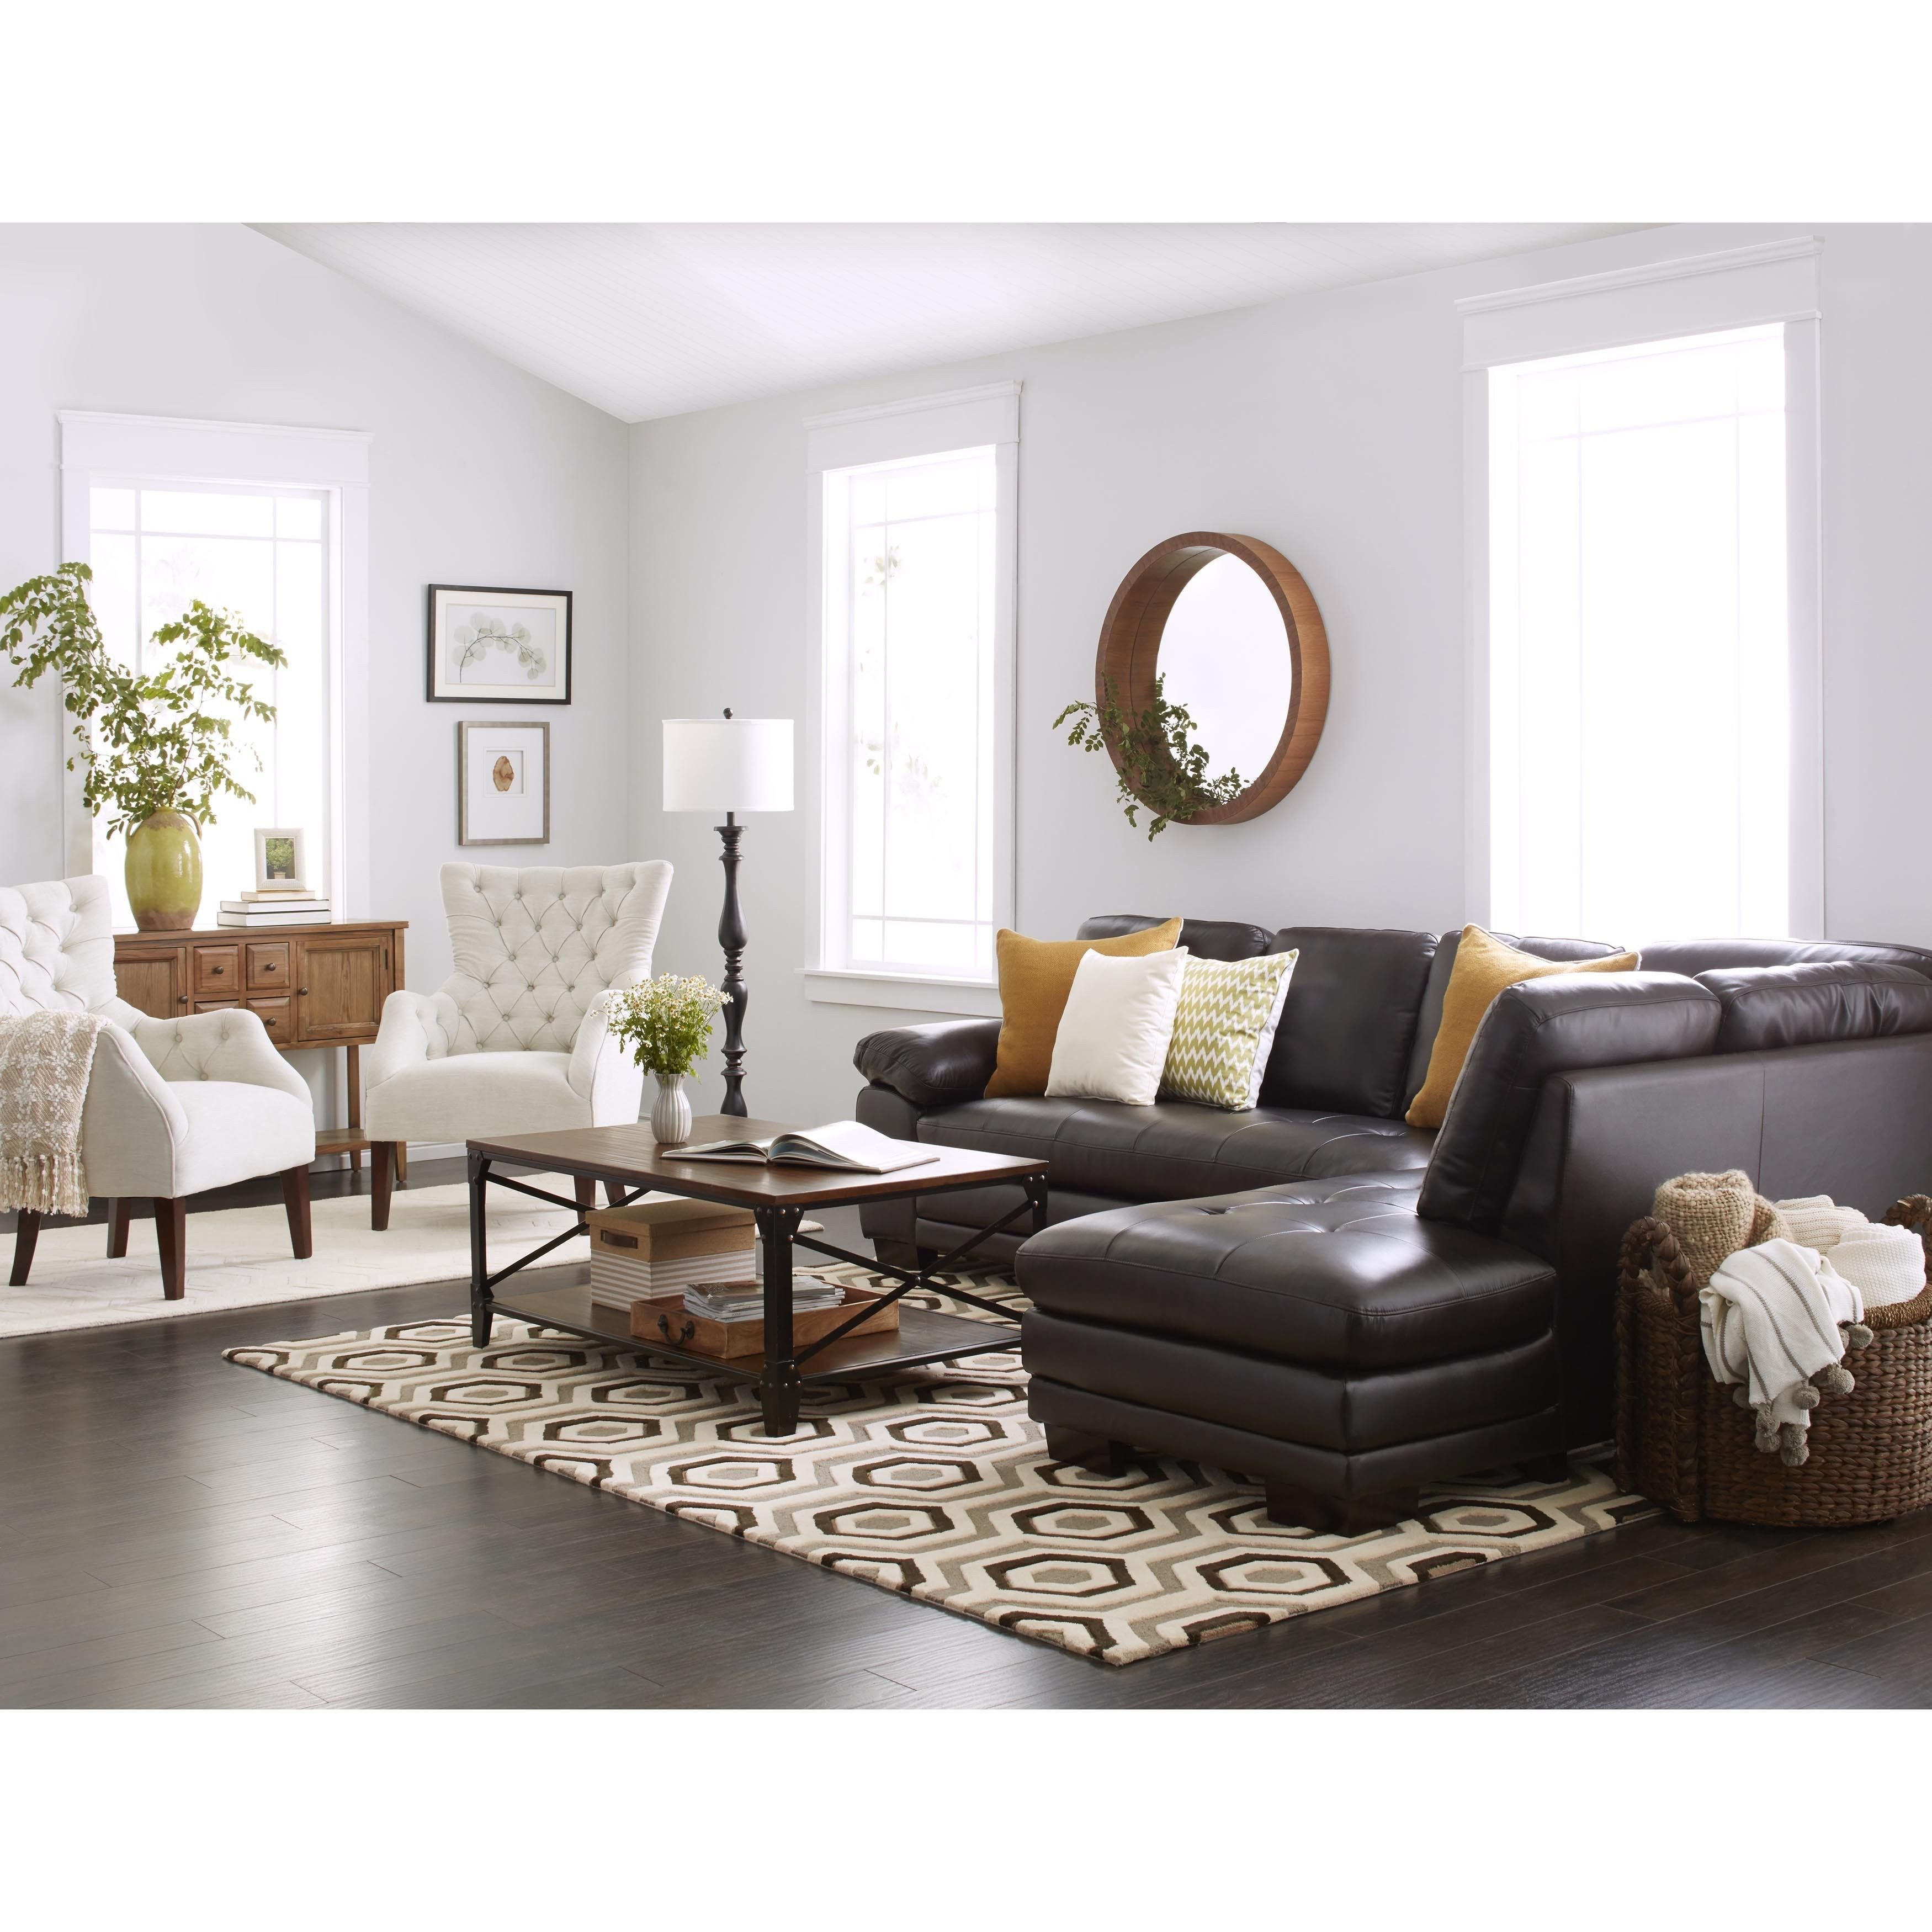 Living Room Decor with Sectional New Abbyson Devonshire Leather Tufted Sectional In 2019